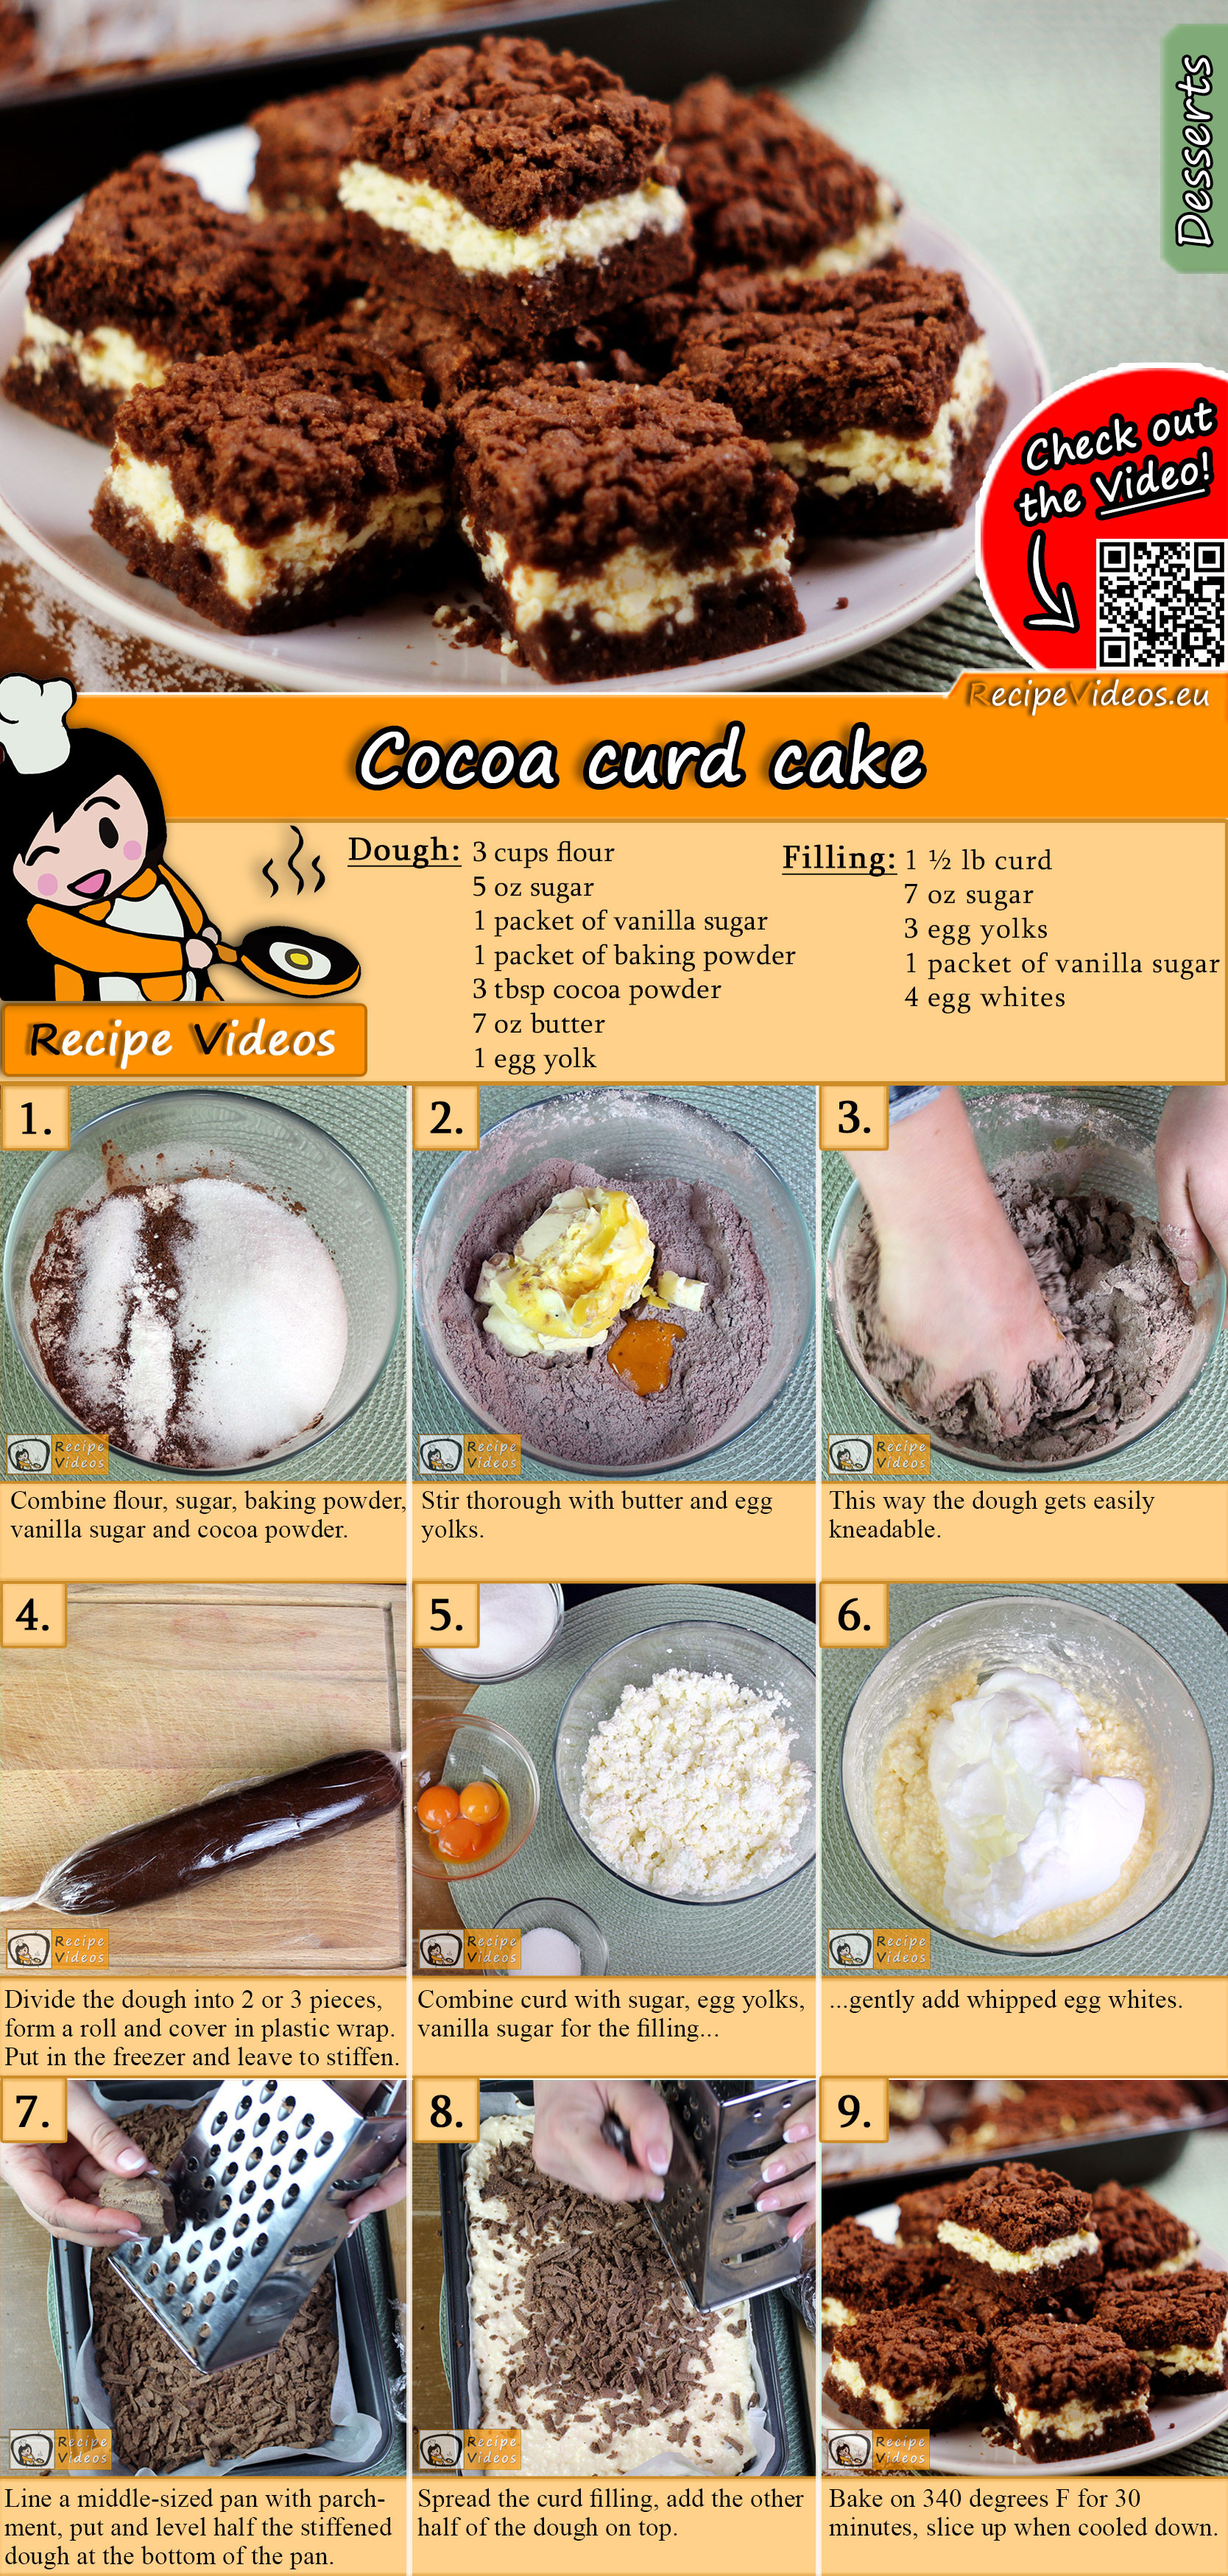 Cocoa curd cake recipe with video